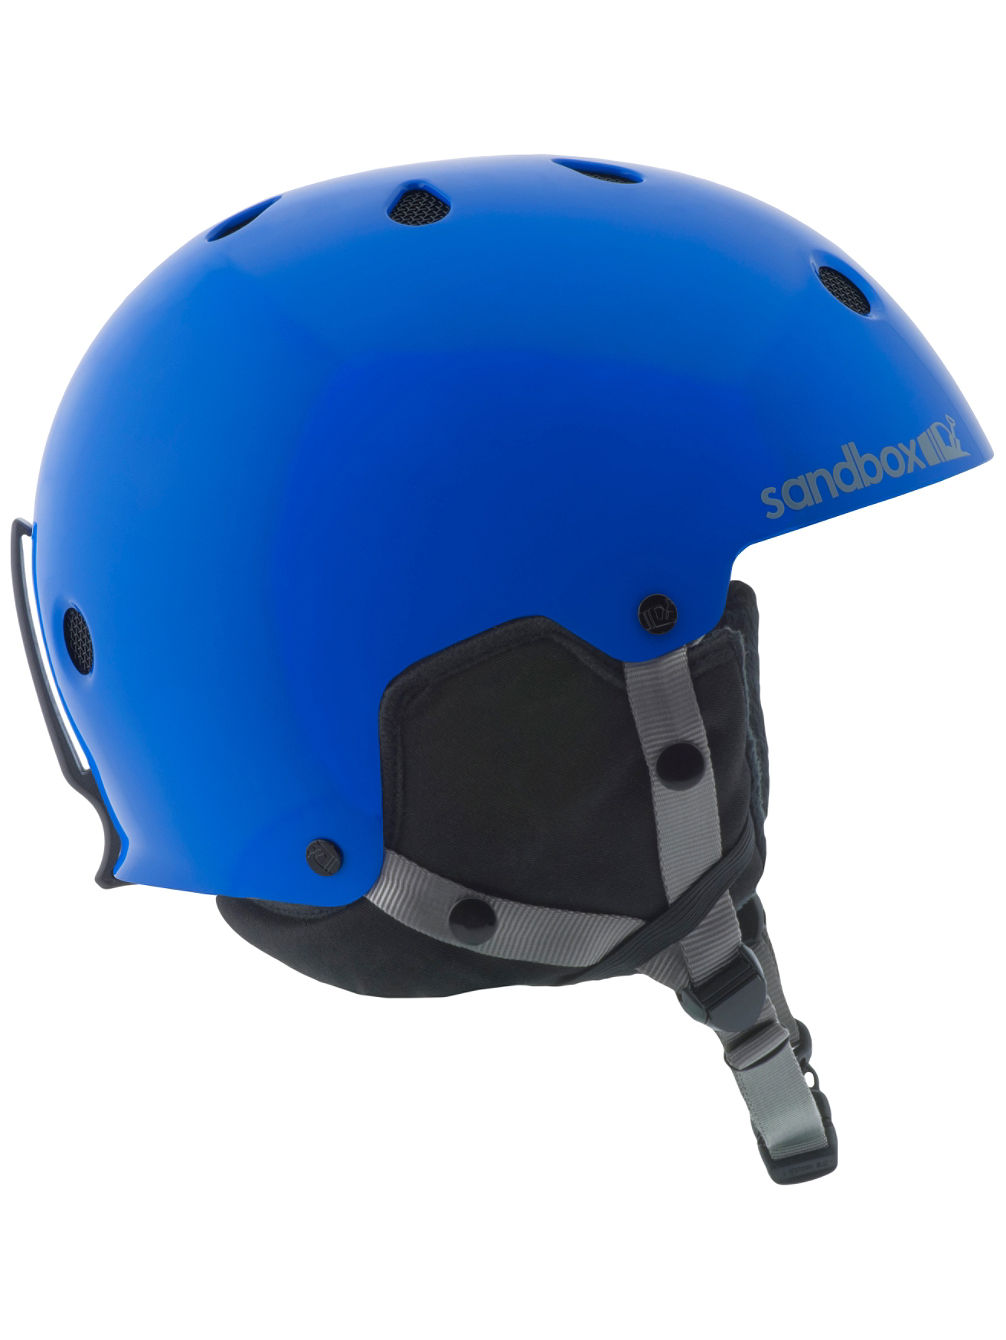 Legend Snow Snowboard Helmet Youth Youth